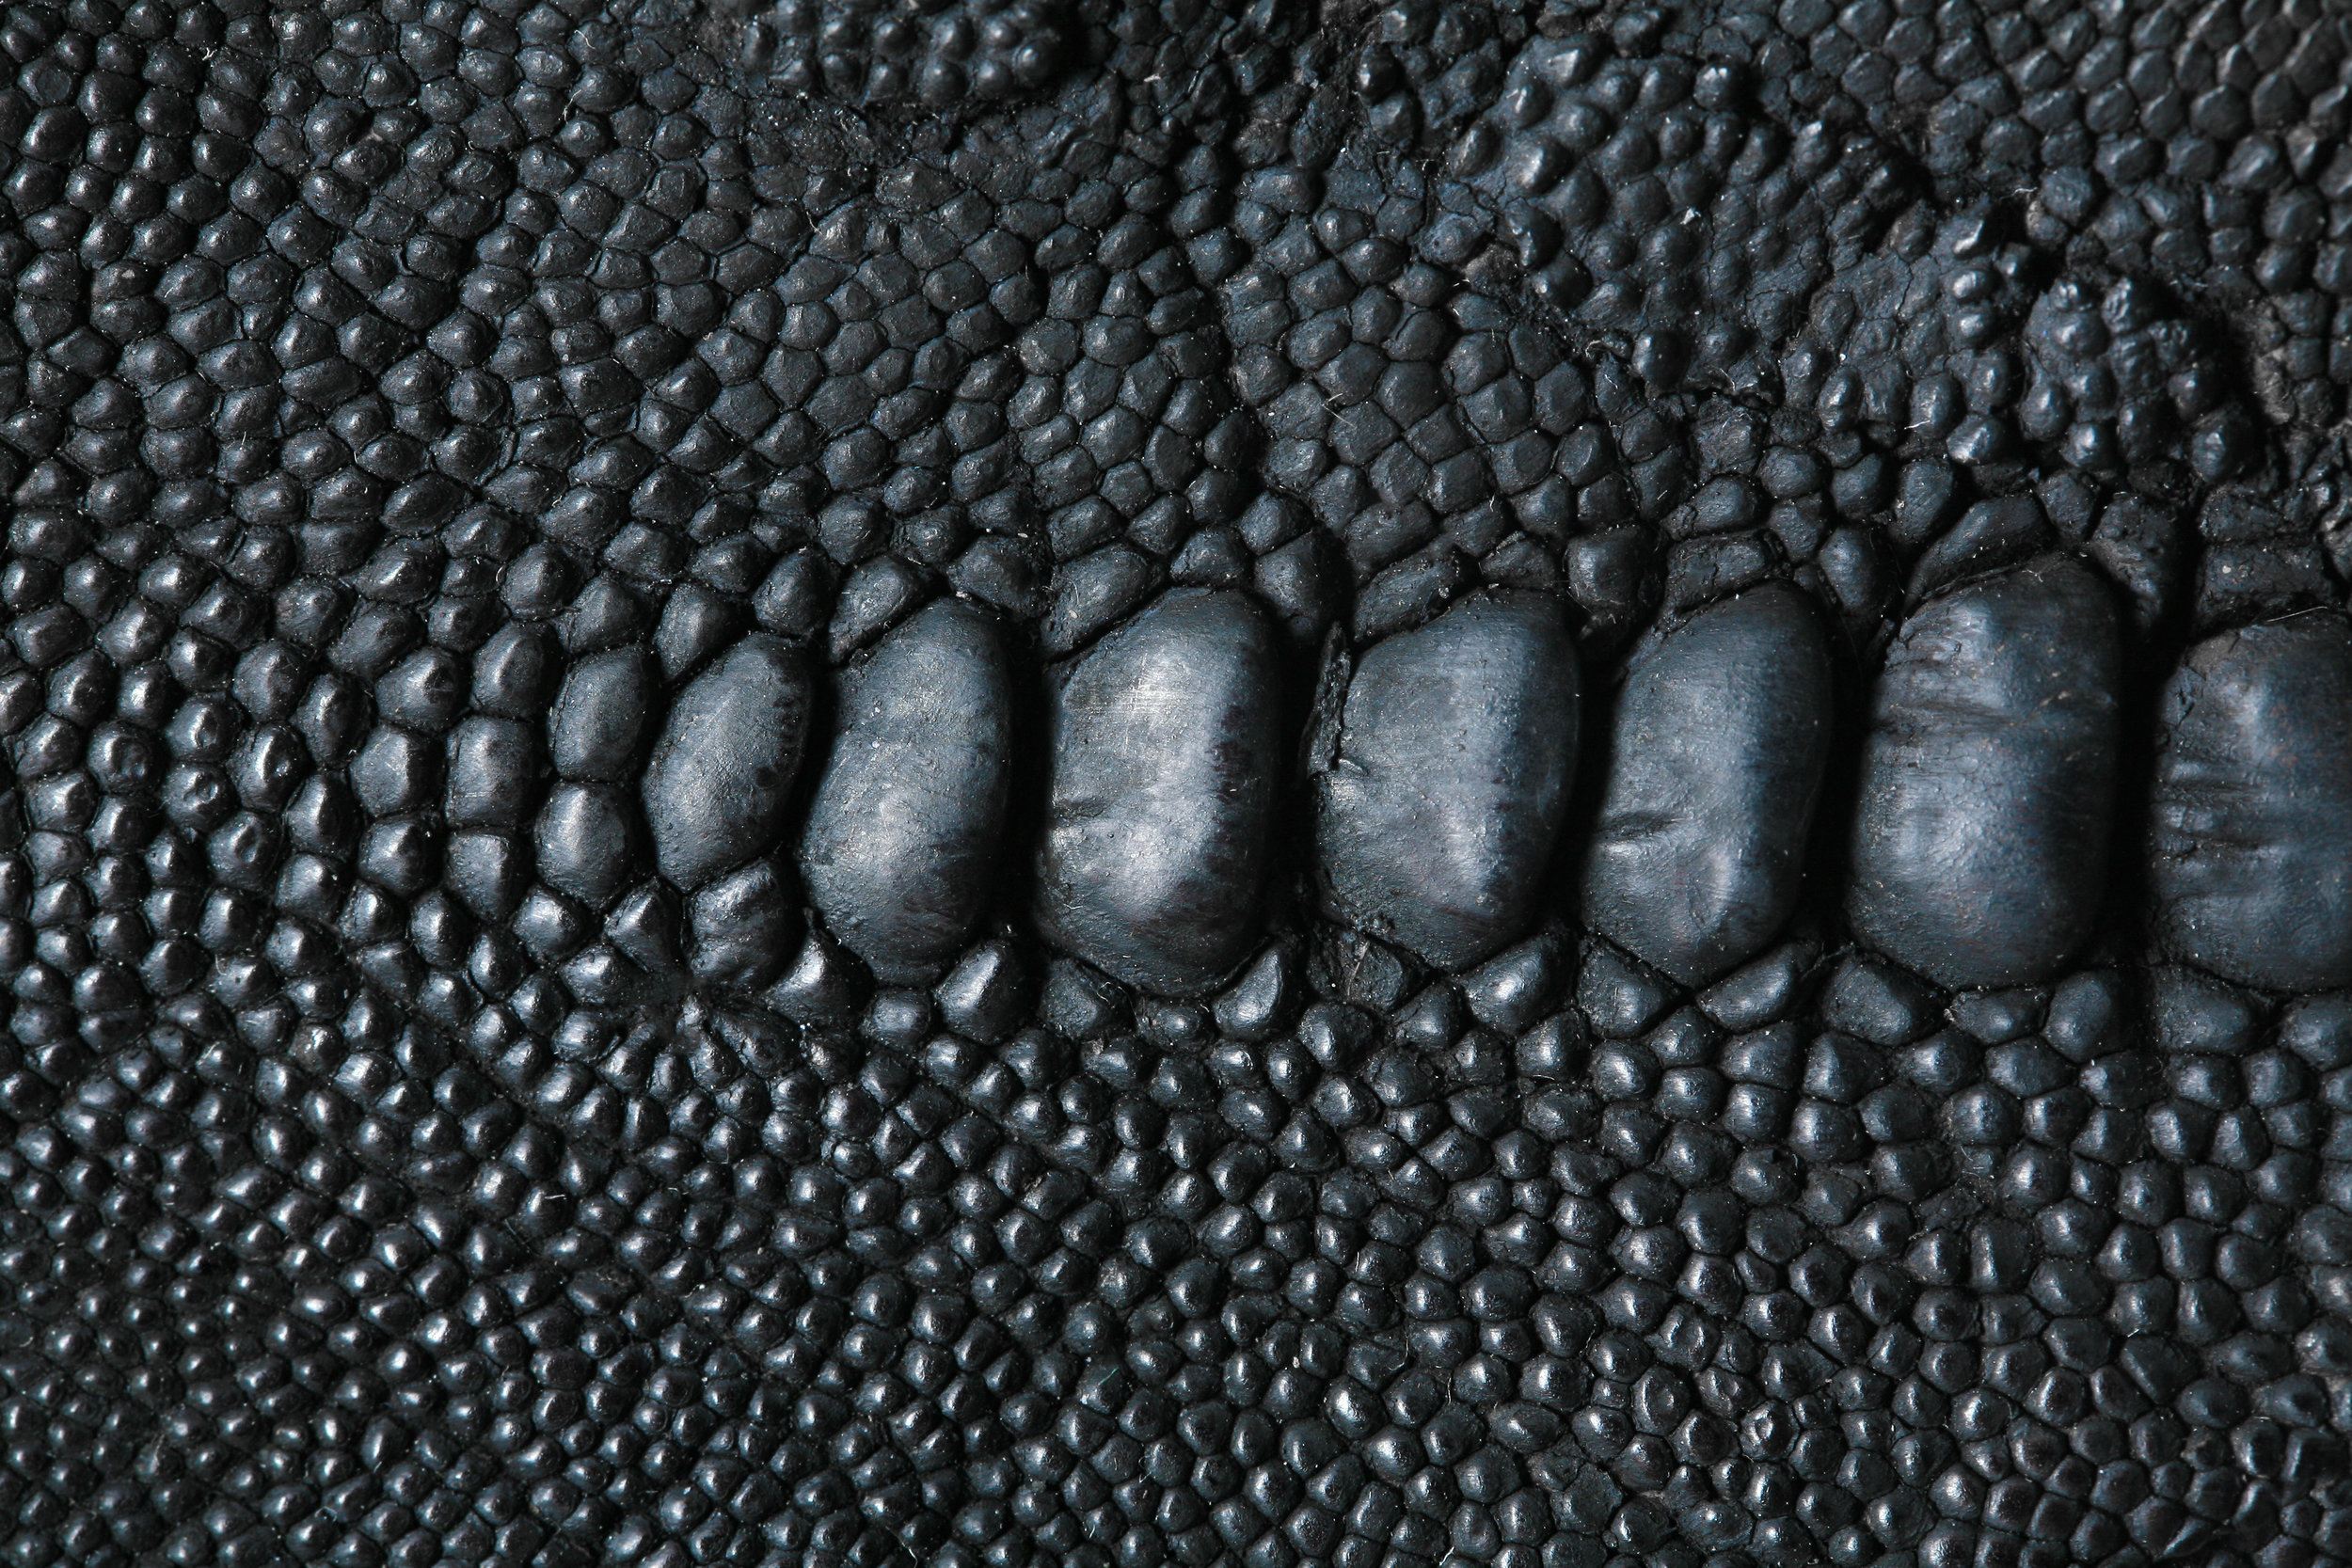 Animal skin ban: is it worth it? - Luxury fashion brands save species. Fact. But the recent announcement by Chanel that it will no longer use reptile skins, will not save species. In our opinion, as leaders within the world's largest and oldest conservation organisation, the decision may be well-meaning, but it is wrong. It will adversely affect the conservation of wild animals and the livelihoods of the people who live with and depend on that wildlife.Full article here